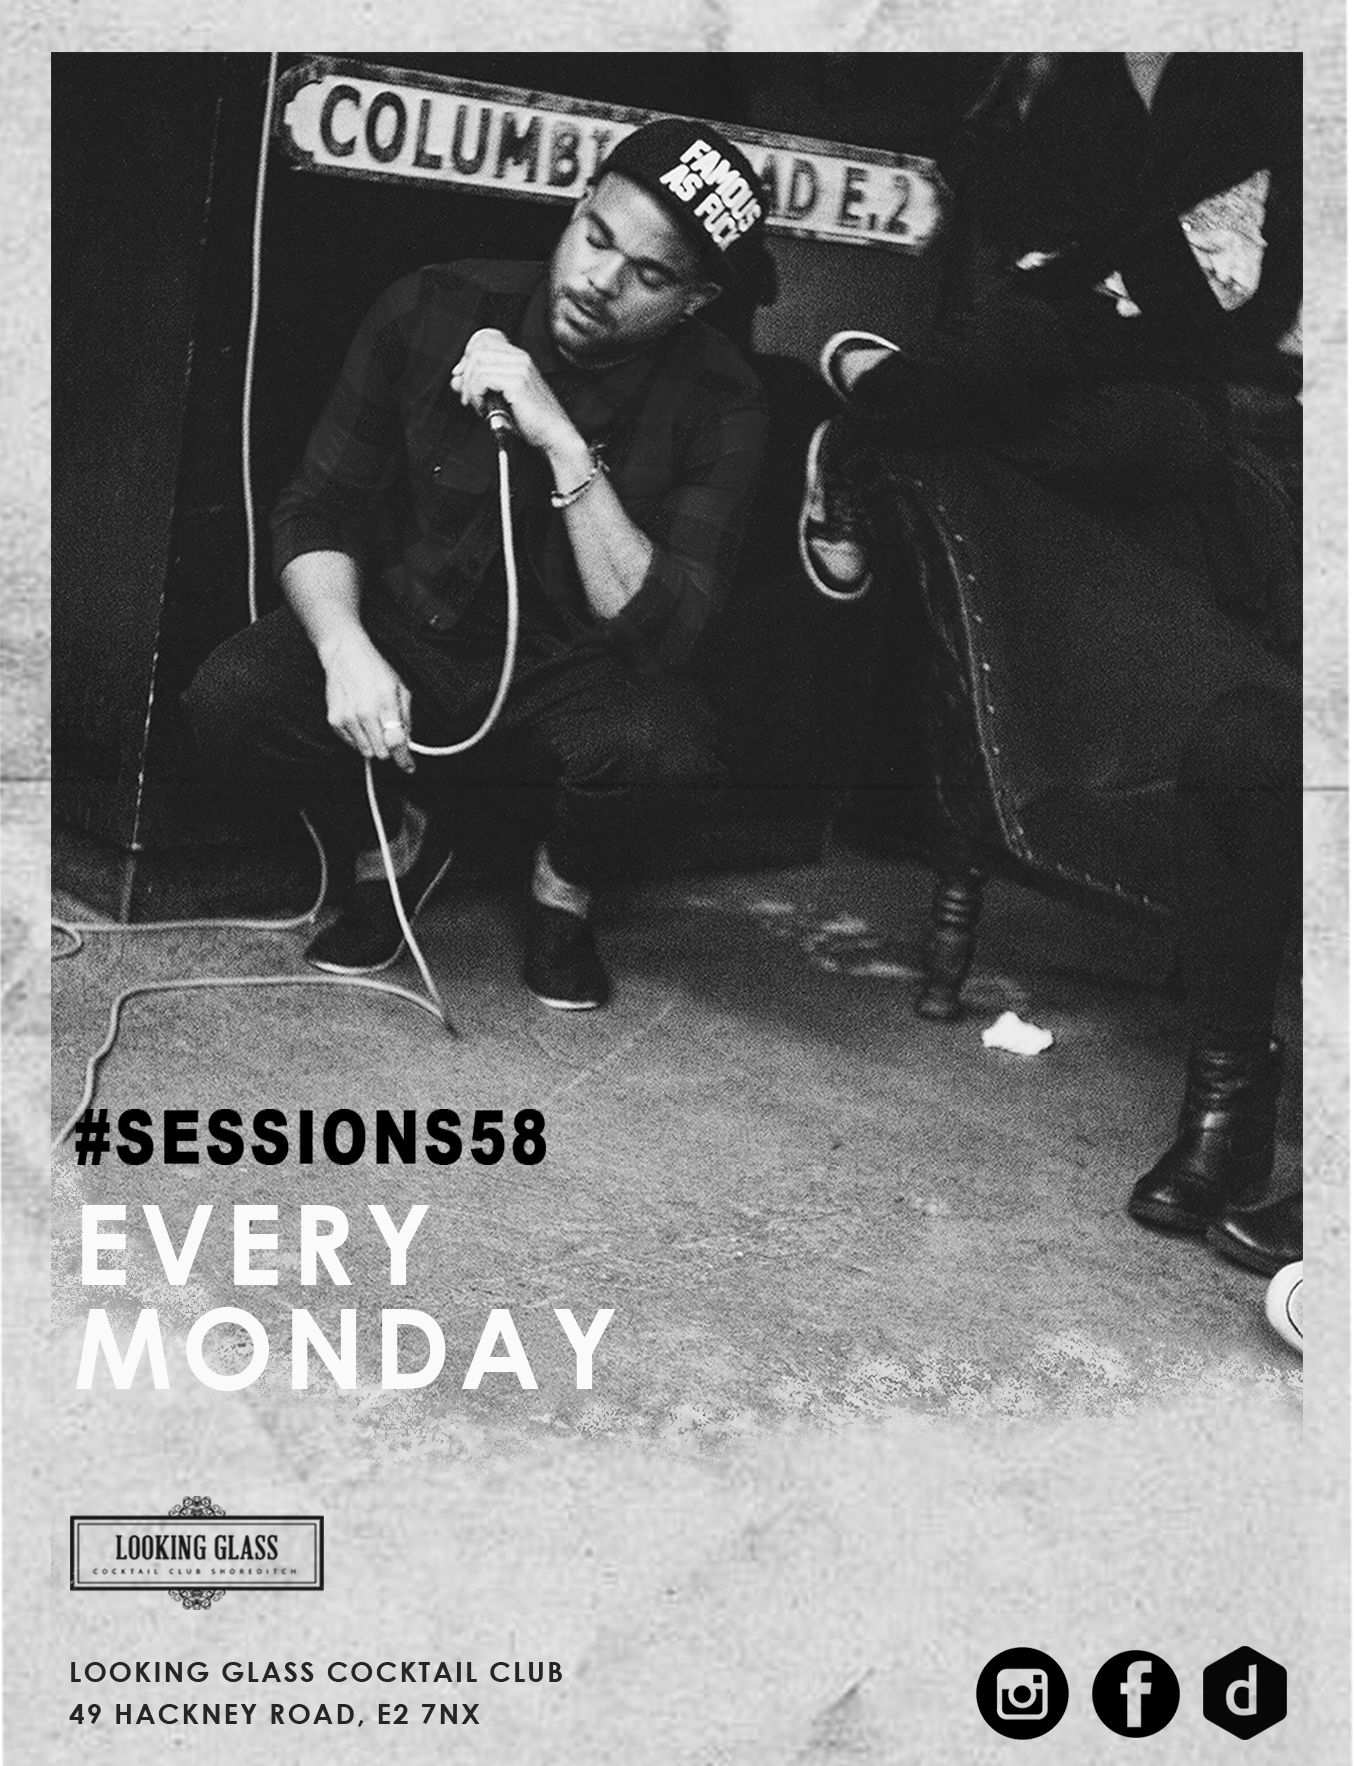 Sessions58